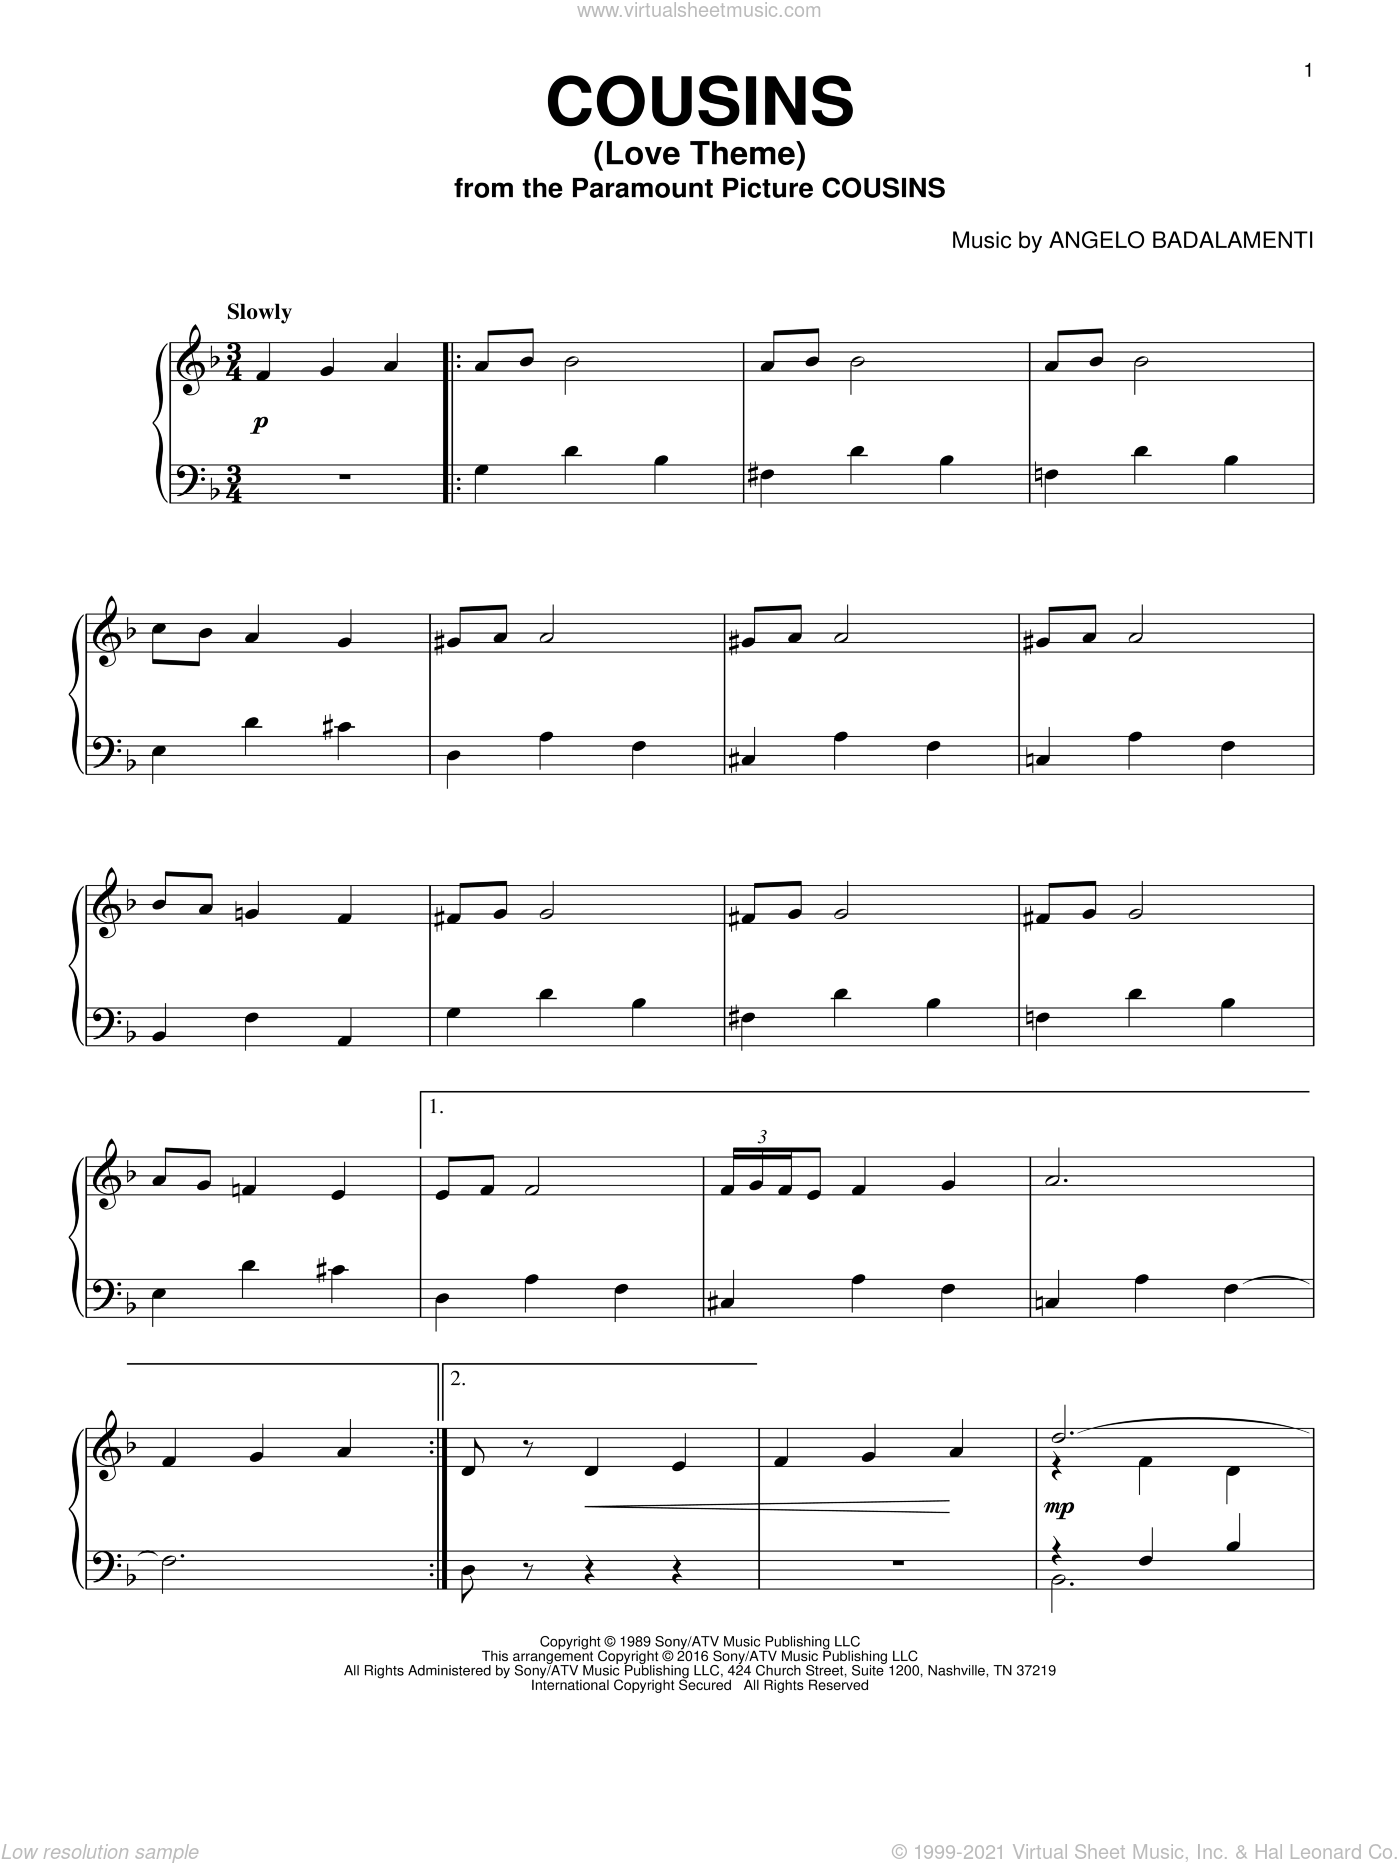 Cousins (Love Theme) sheet music for piano solo by Angelo Badalamenti, intermediate skill level